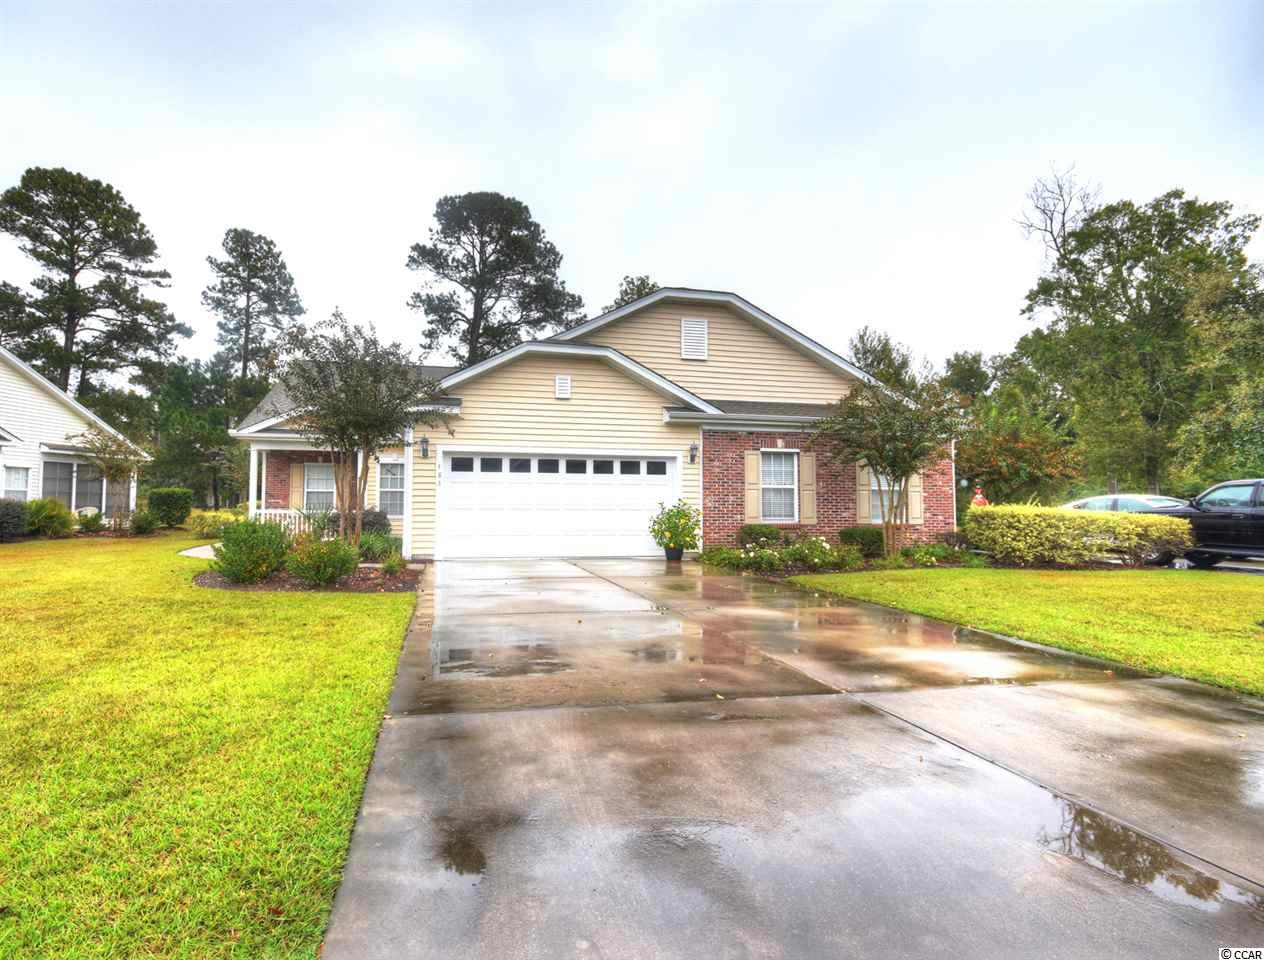 1/2 Duplex MLS:1800722 Deerfield Links  483 DEERFIELD LINKS DRIVE Myrtle Beach SC